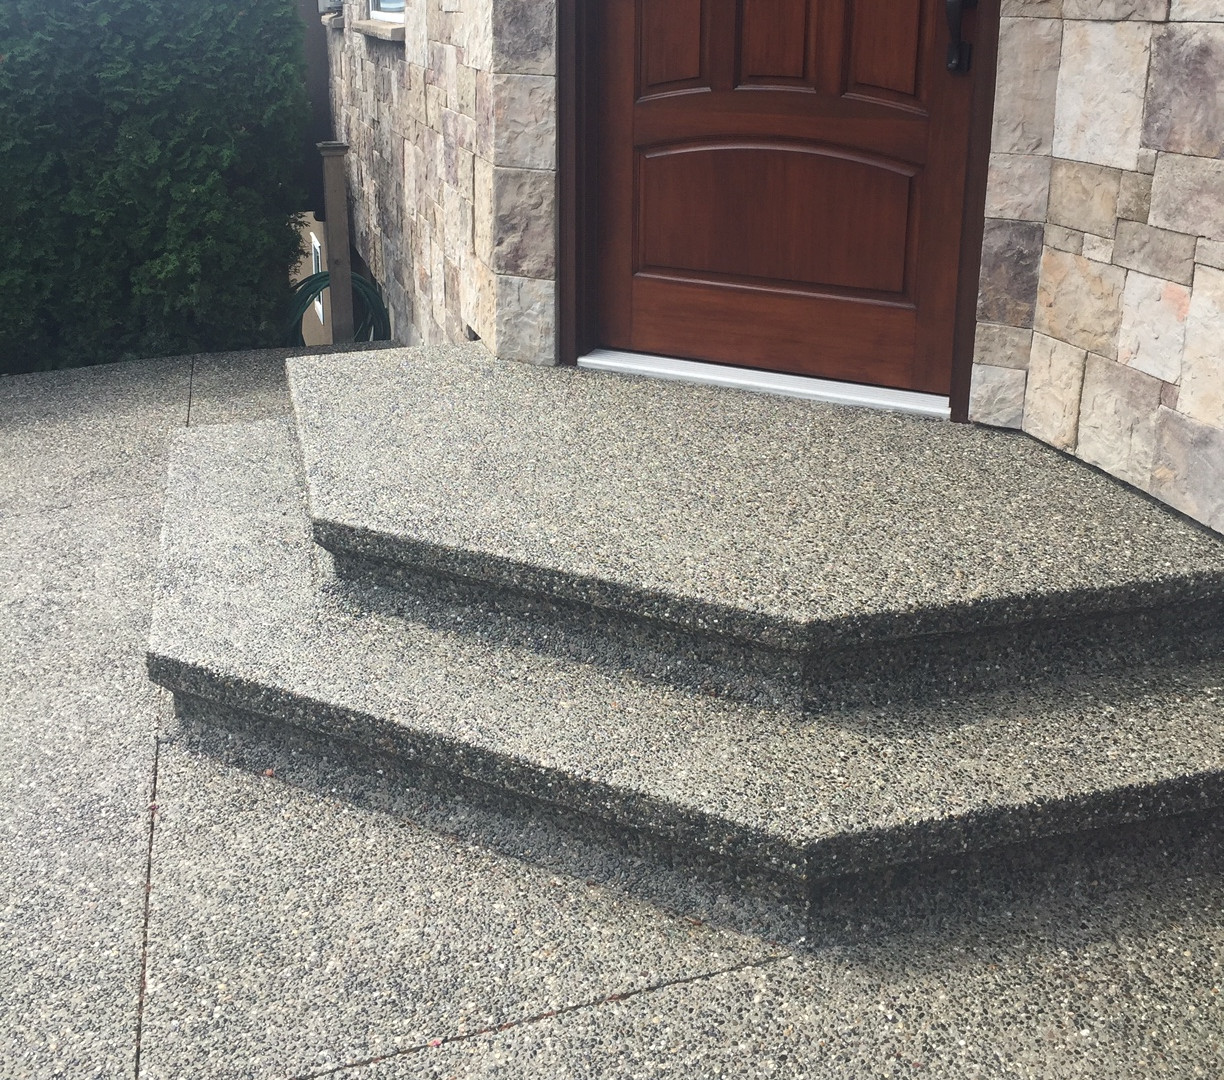 exposed-aggregate-concrete-stairs-19049.